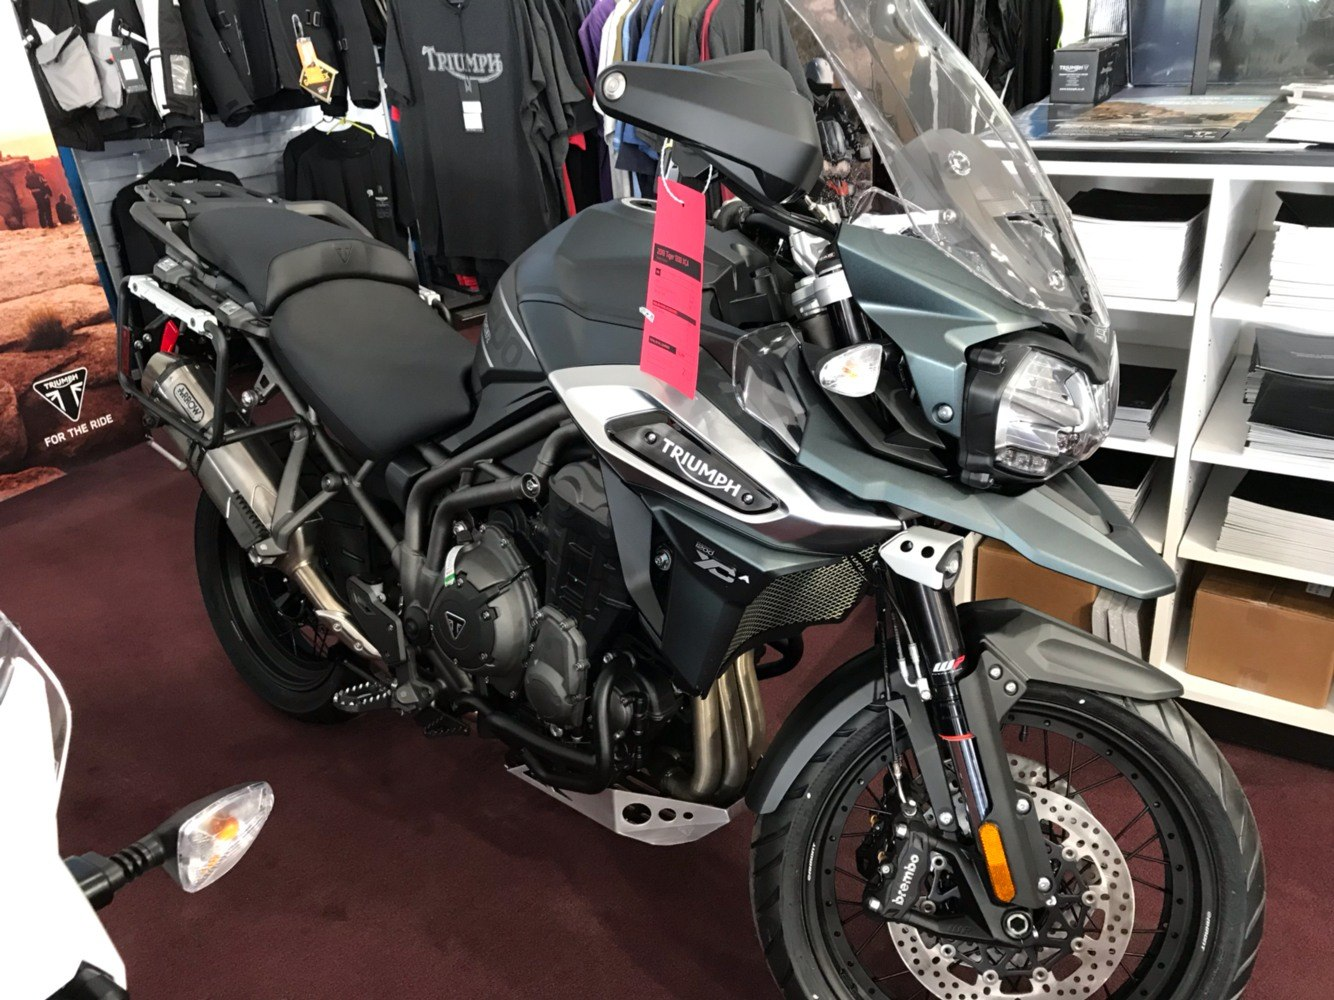 2019 Triumph Tiger 1200 XCa in Belle Plaine, Minnesota - Photo 1